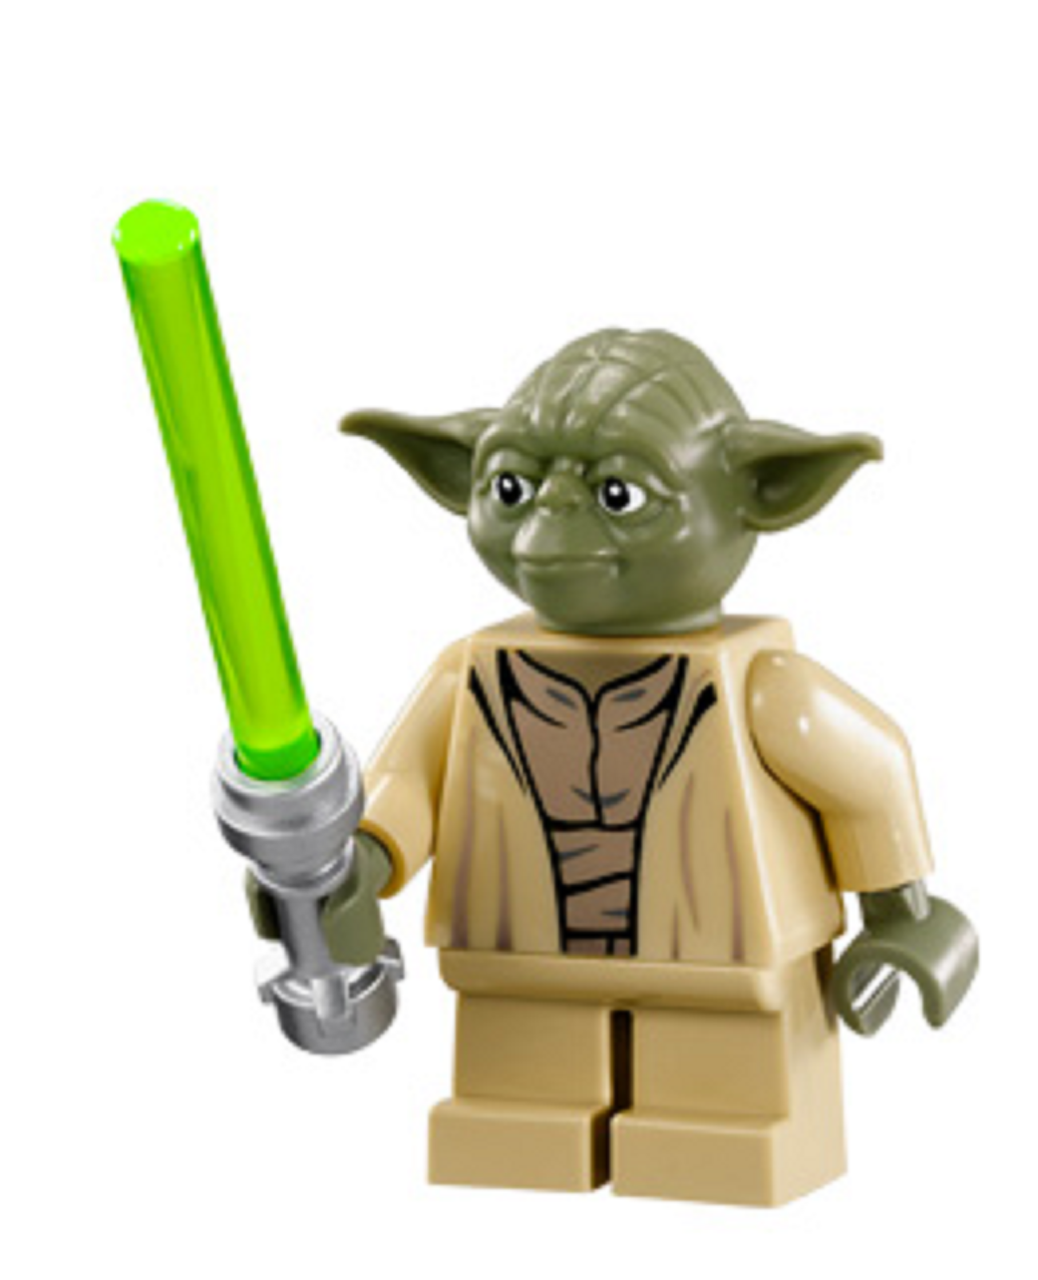 LEGO® Star Wars from 75208 Yoda minifig with walking stick